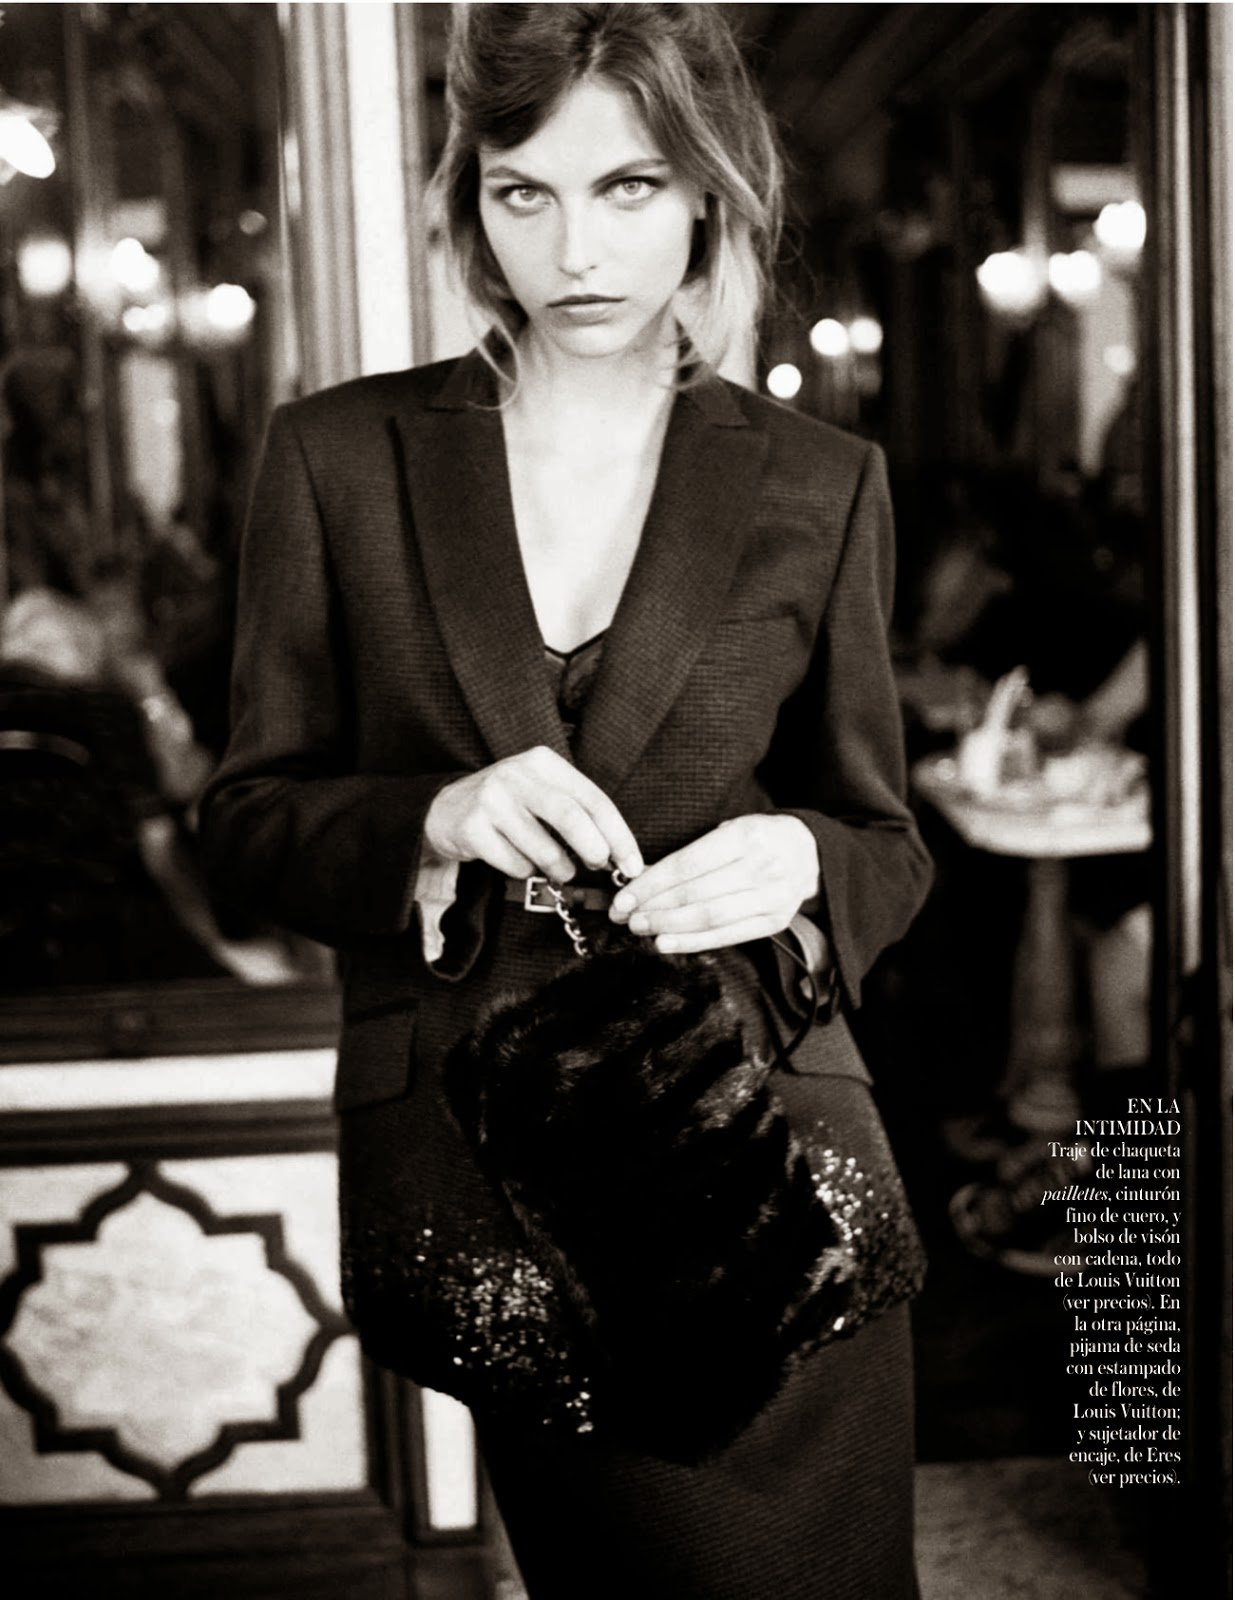 Karlina Caune wearing Louis Vuitton Fall/Winter 2013 photographed by Quentin de Briey for Vogue Spain October 2013 via fashioned by love british fashion blog